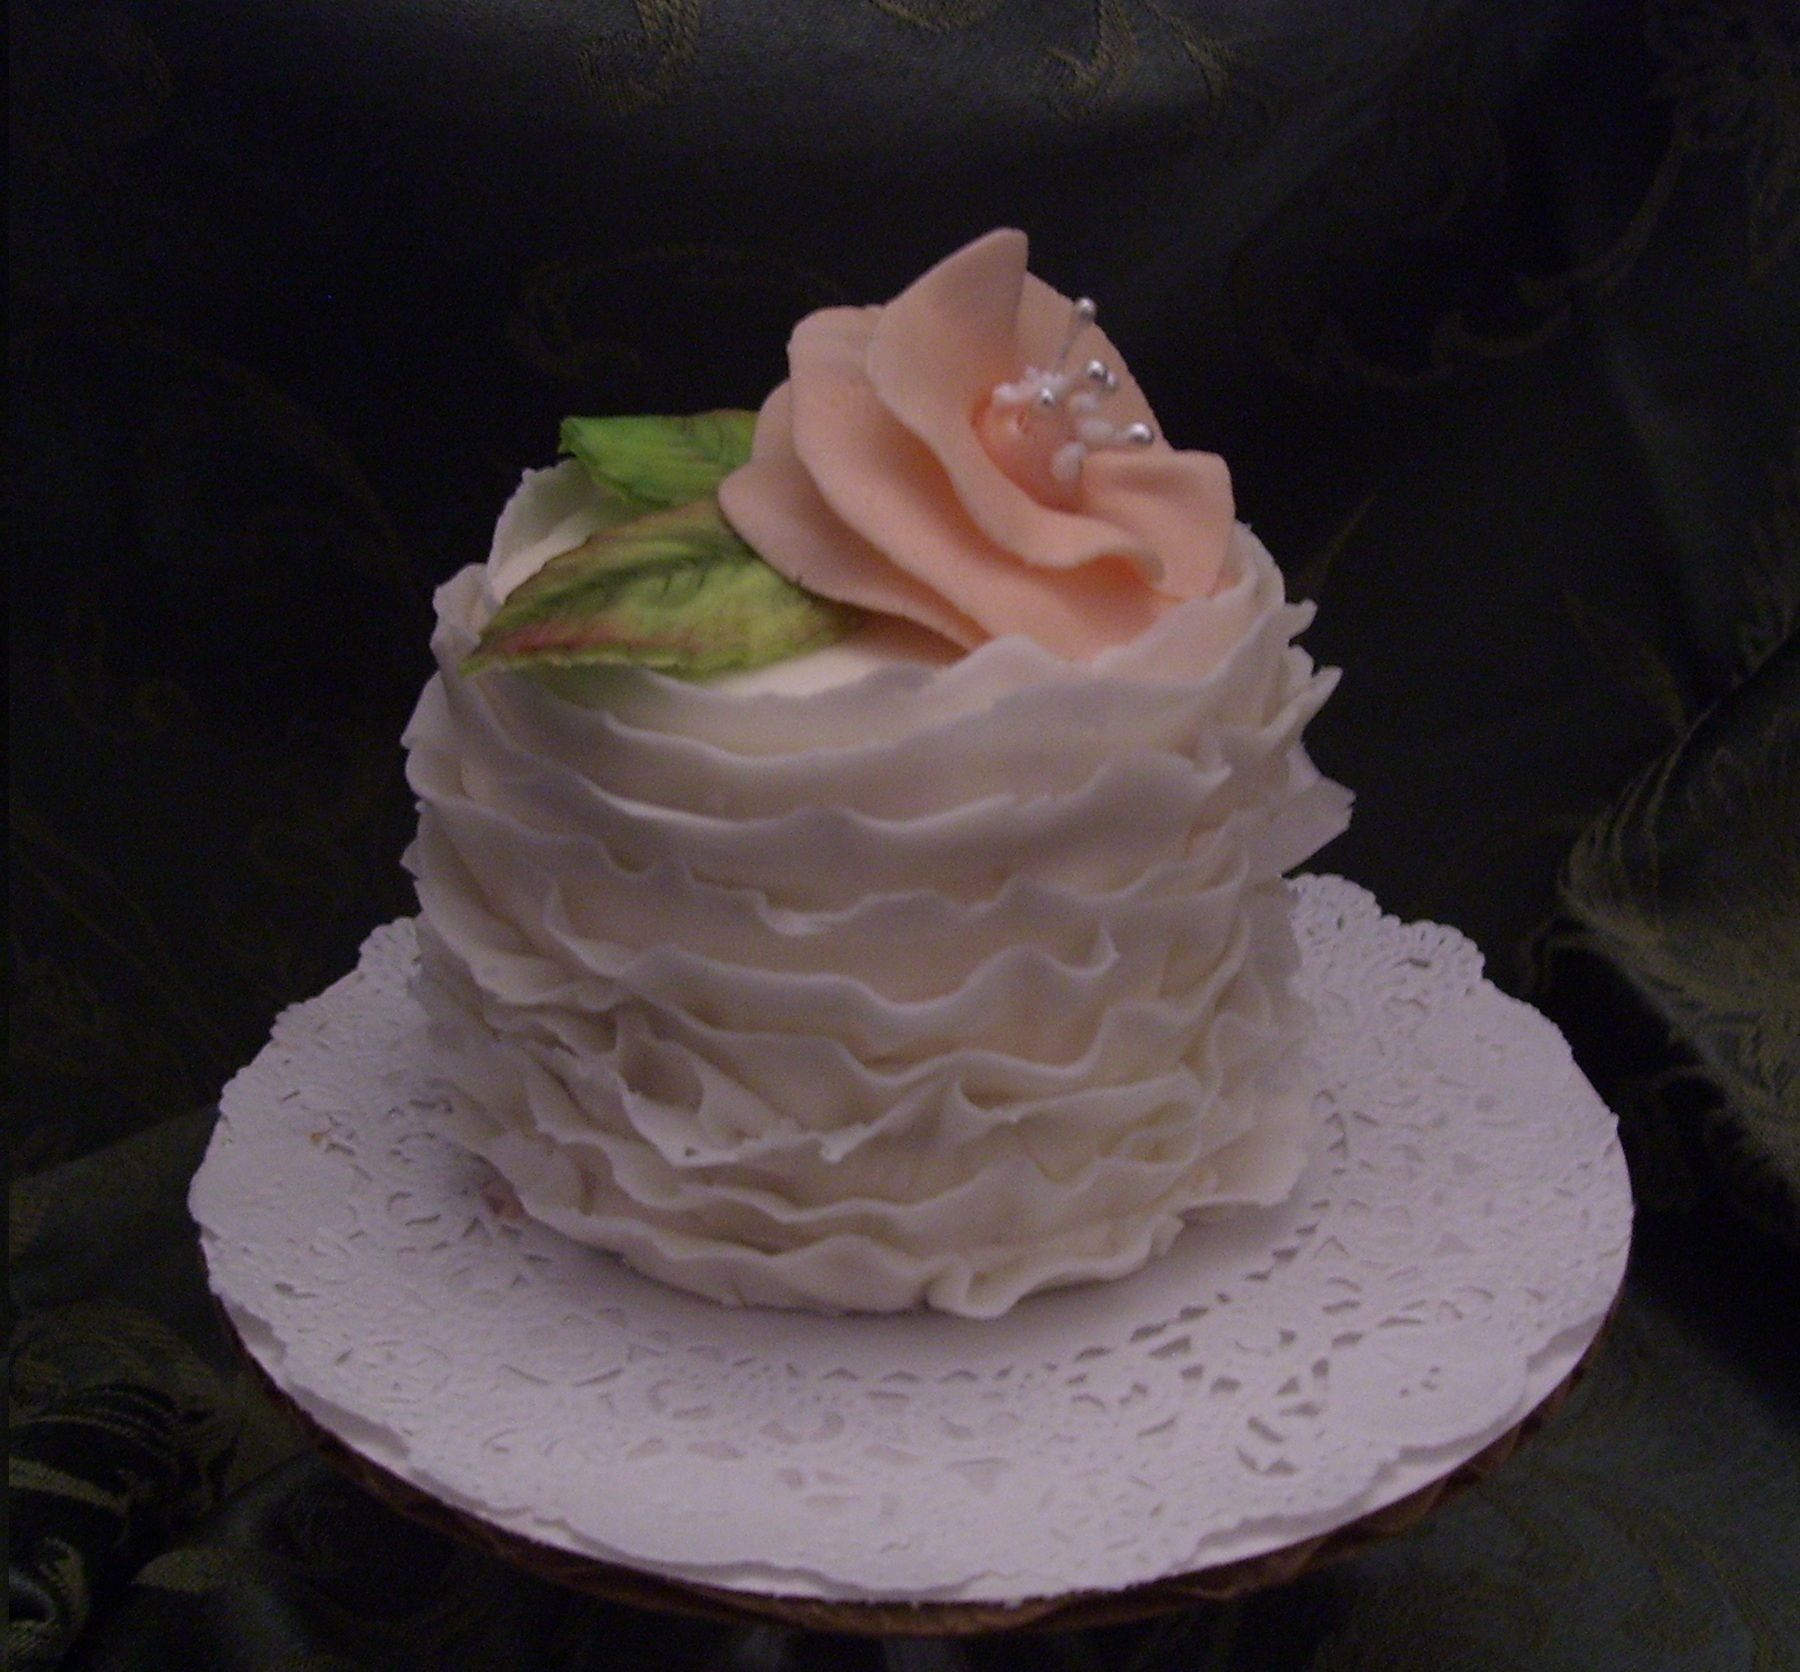 Practice Frills With Rolled Fondant Mini Cakes Petit Fours Sour Cream Pound Cake Mini Cakes Cake